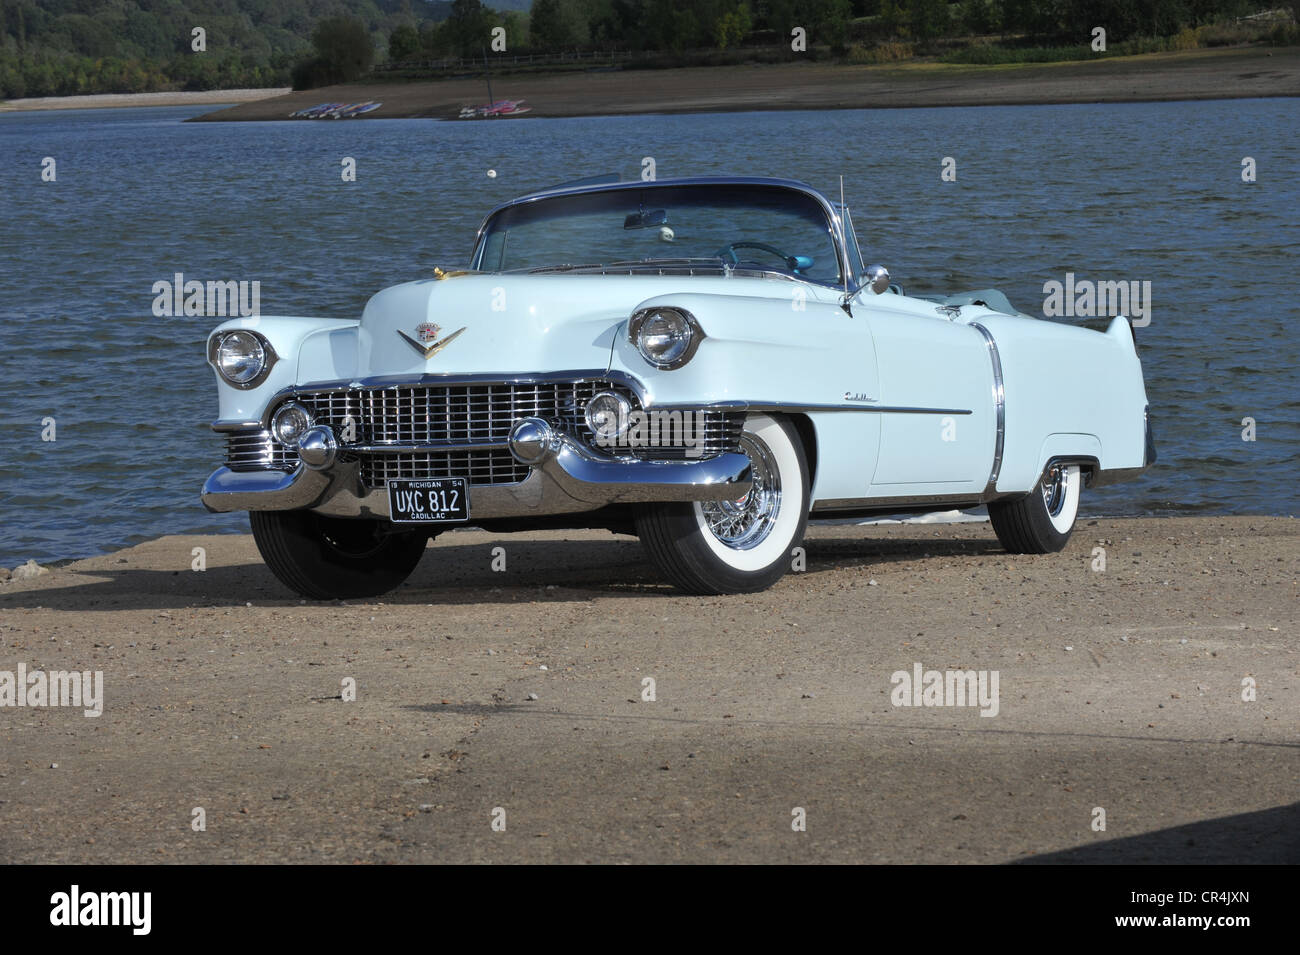 Classic Cadillac Stock Photos Images Page 1954 Sedan Deville Convertible American Car Image